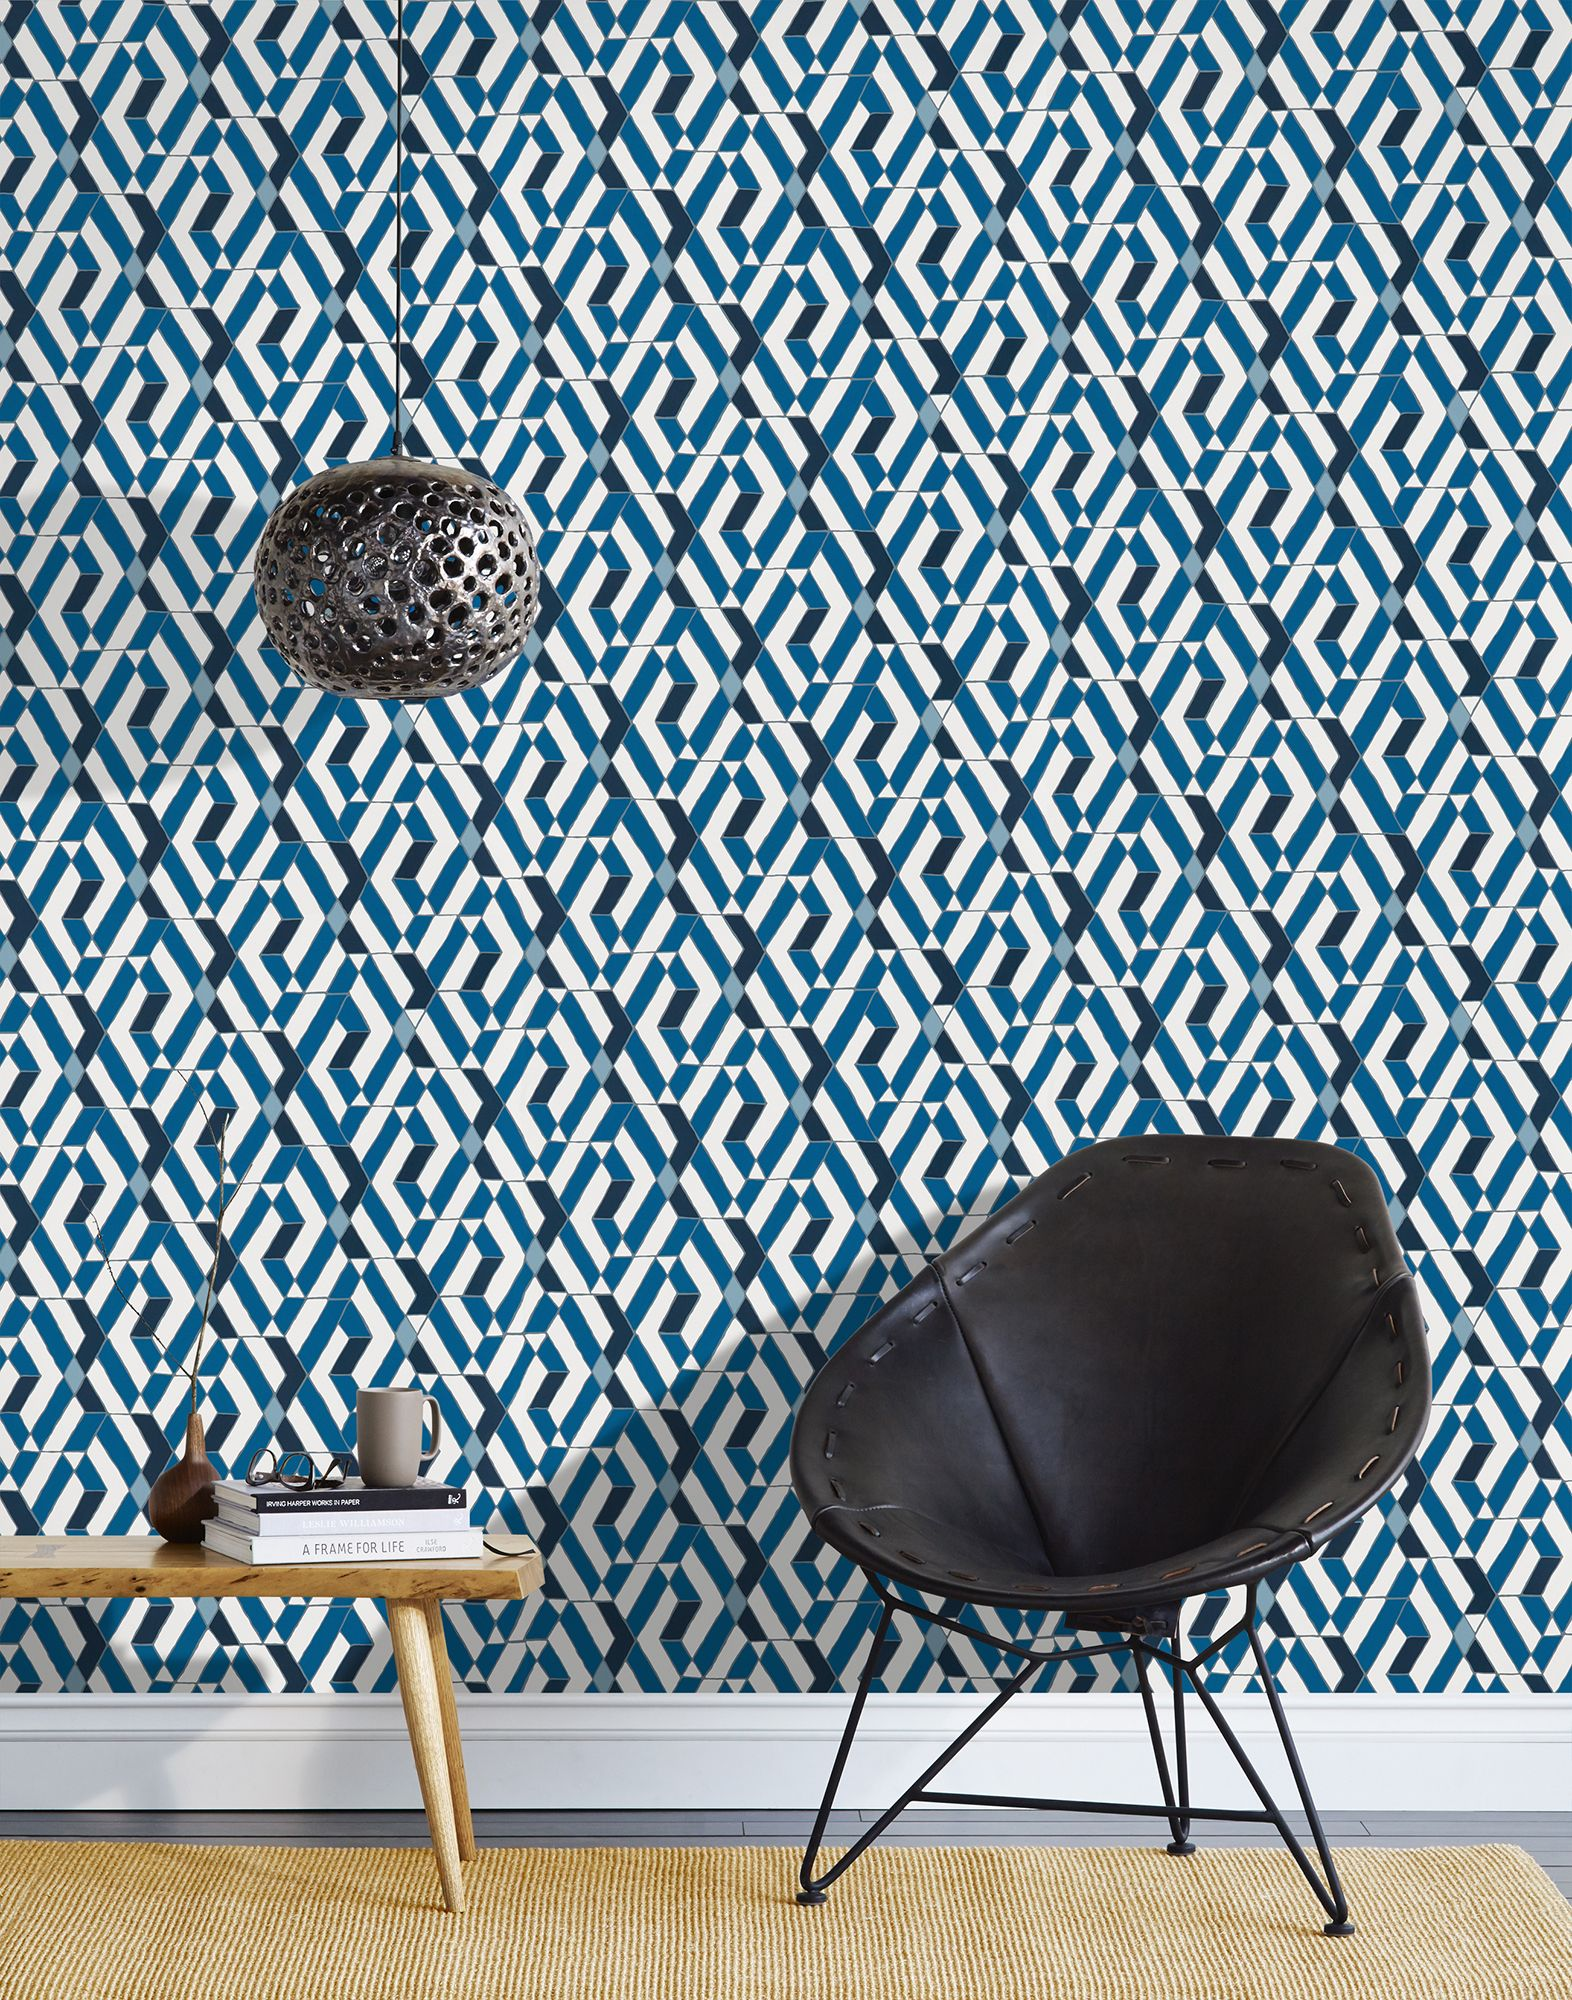 18 Art Deco Wallpaper Ideas